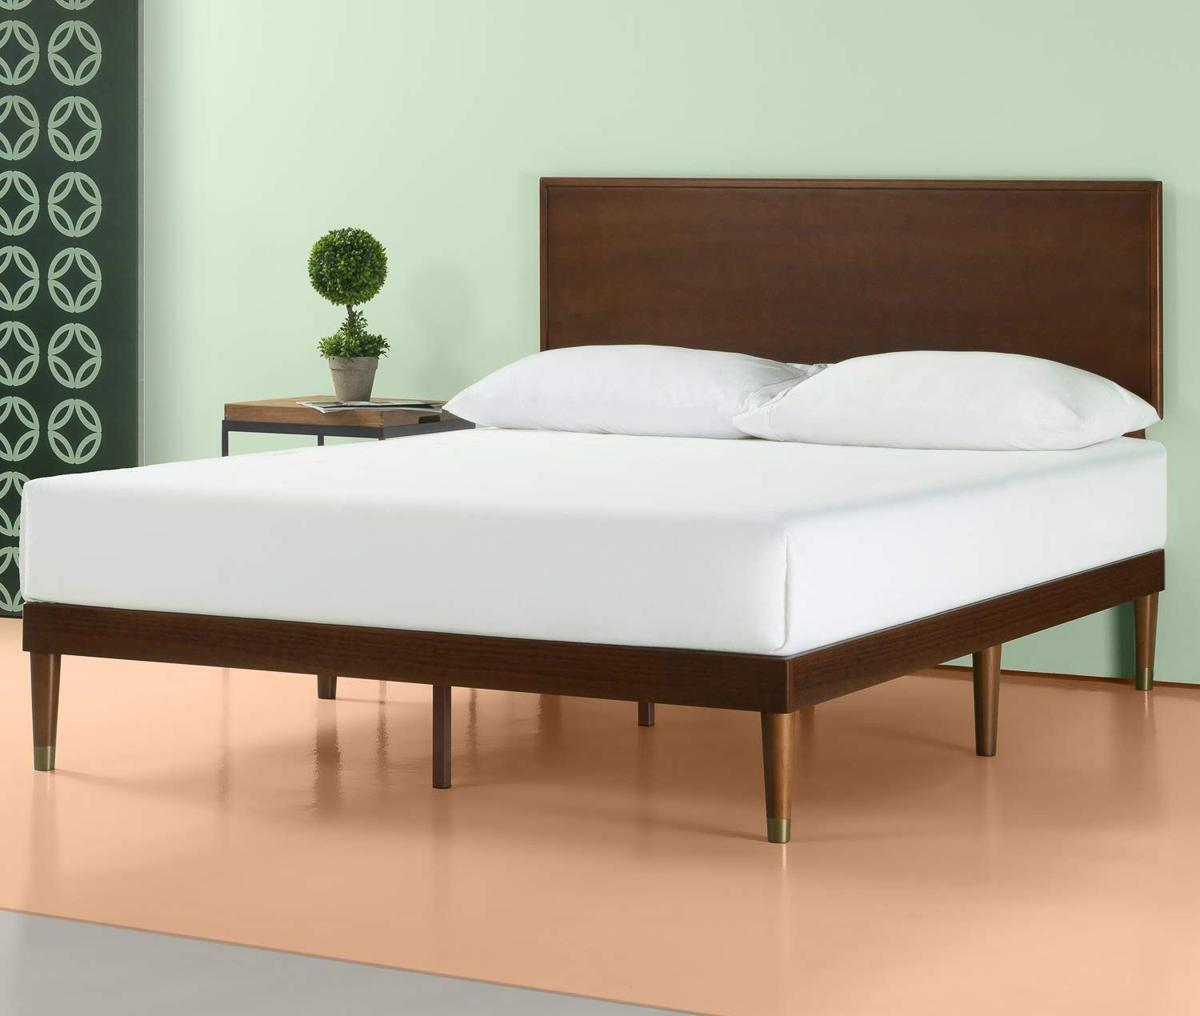 Get a West Elm look for under $300 with this mid-century bed ...